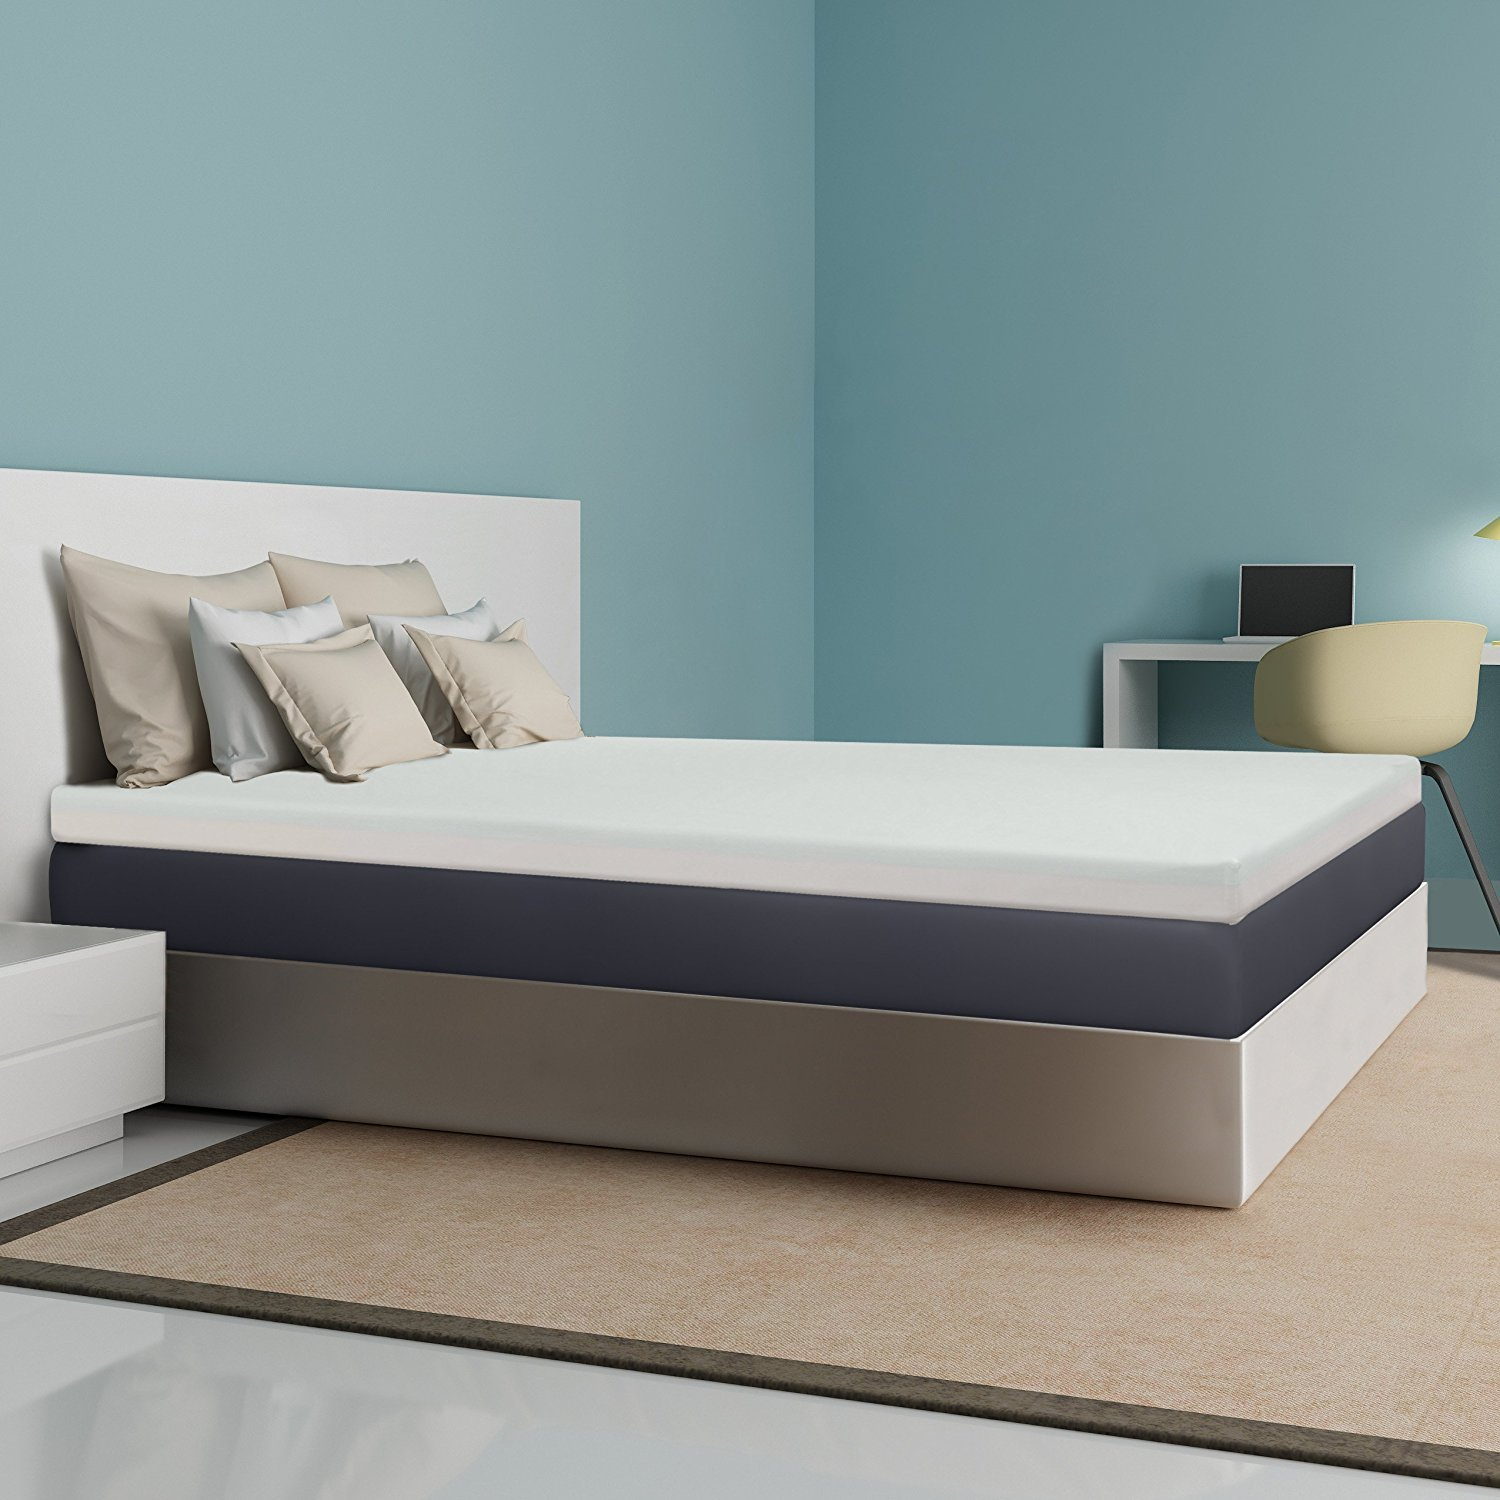 Mattresses Ease Bedding With Style